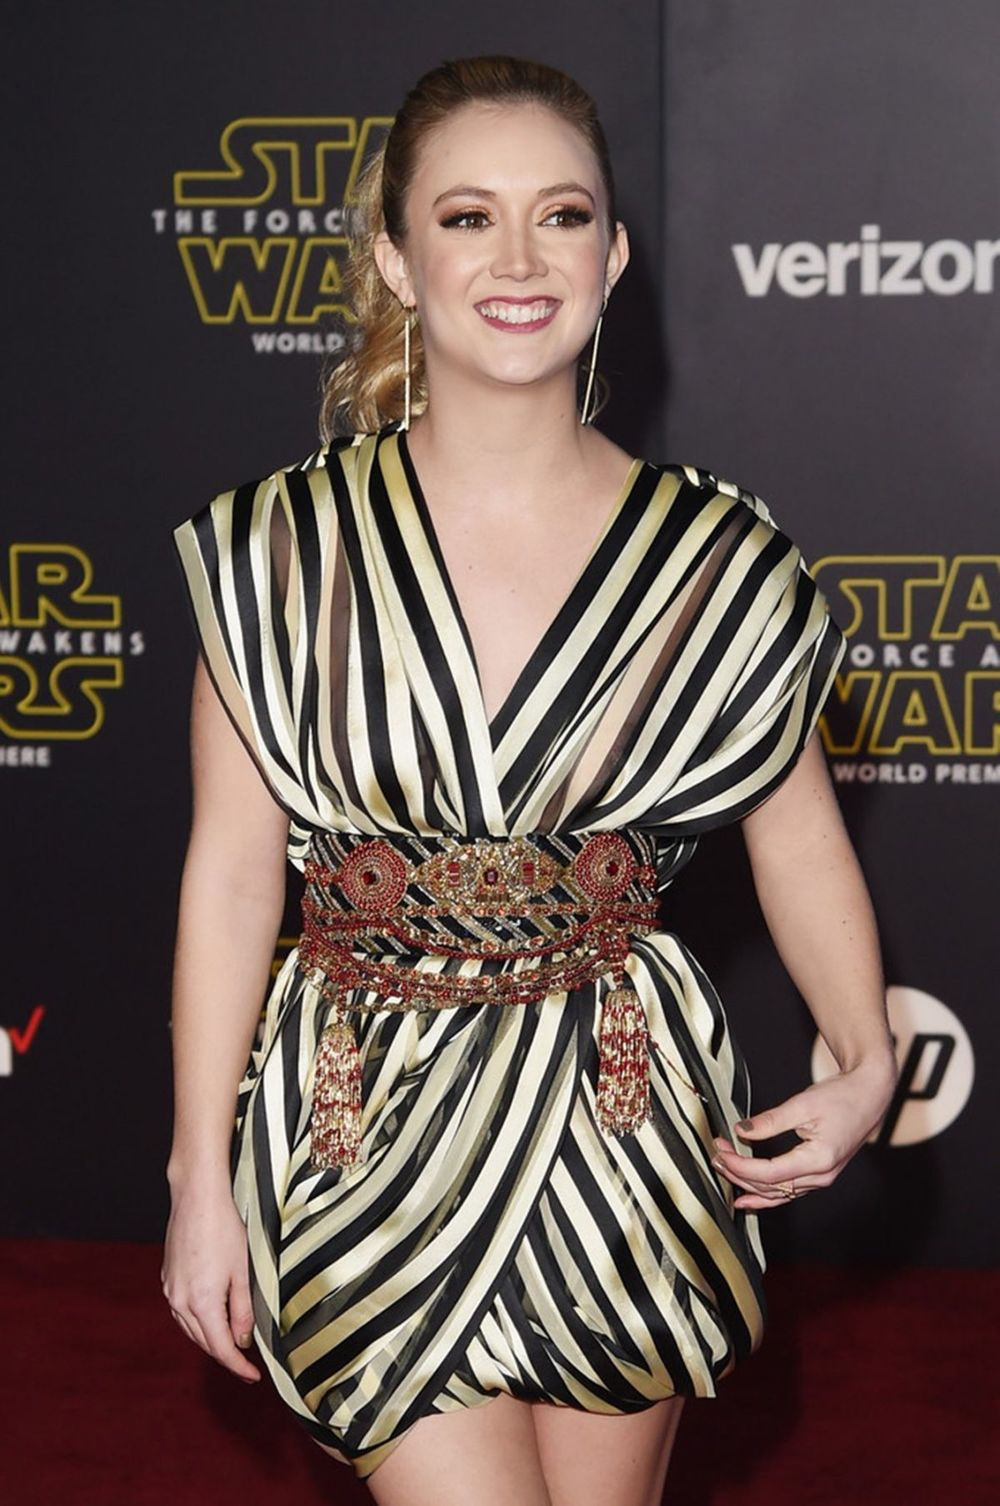 billie-lourd-at-star-wars-episode-vii-the-force-awakens-premiere-in-hollywood-12-14-2015_1.jpg